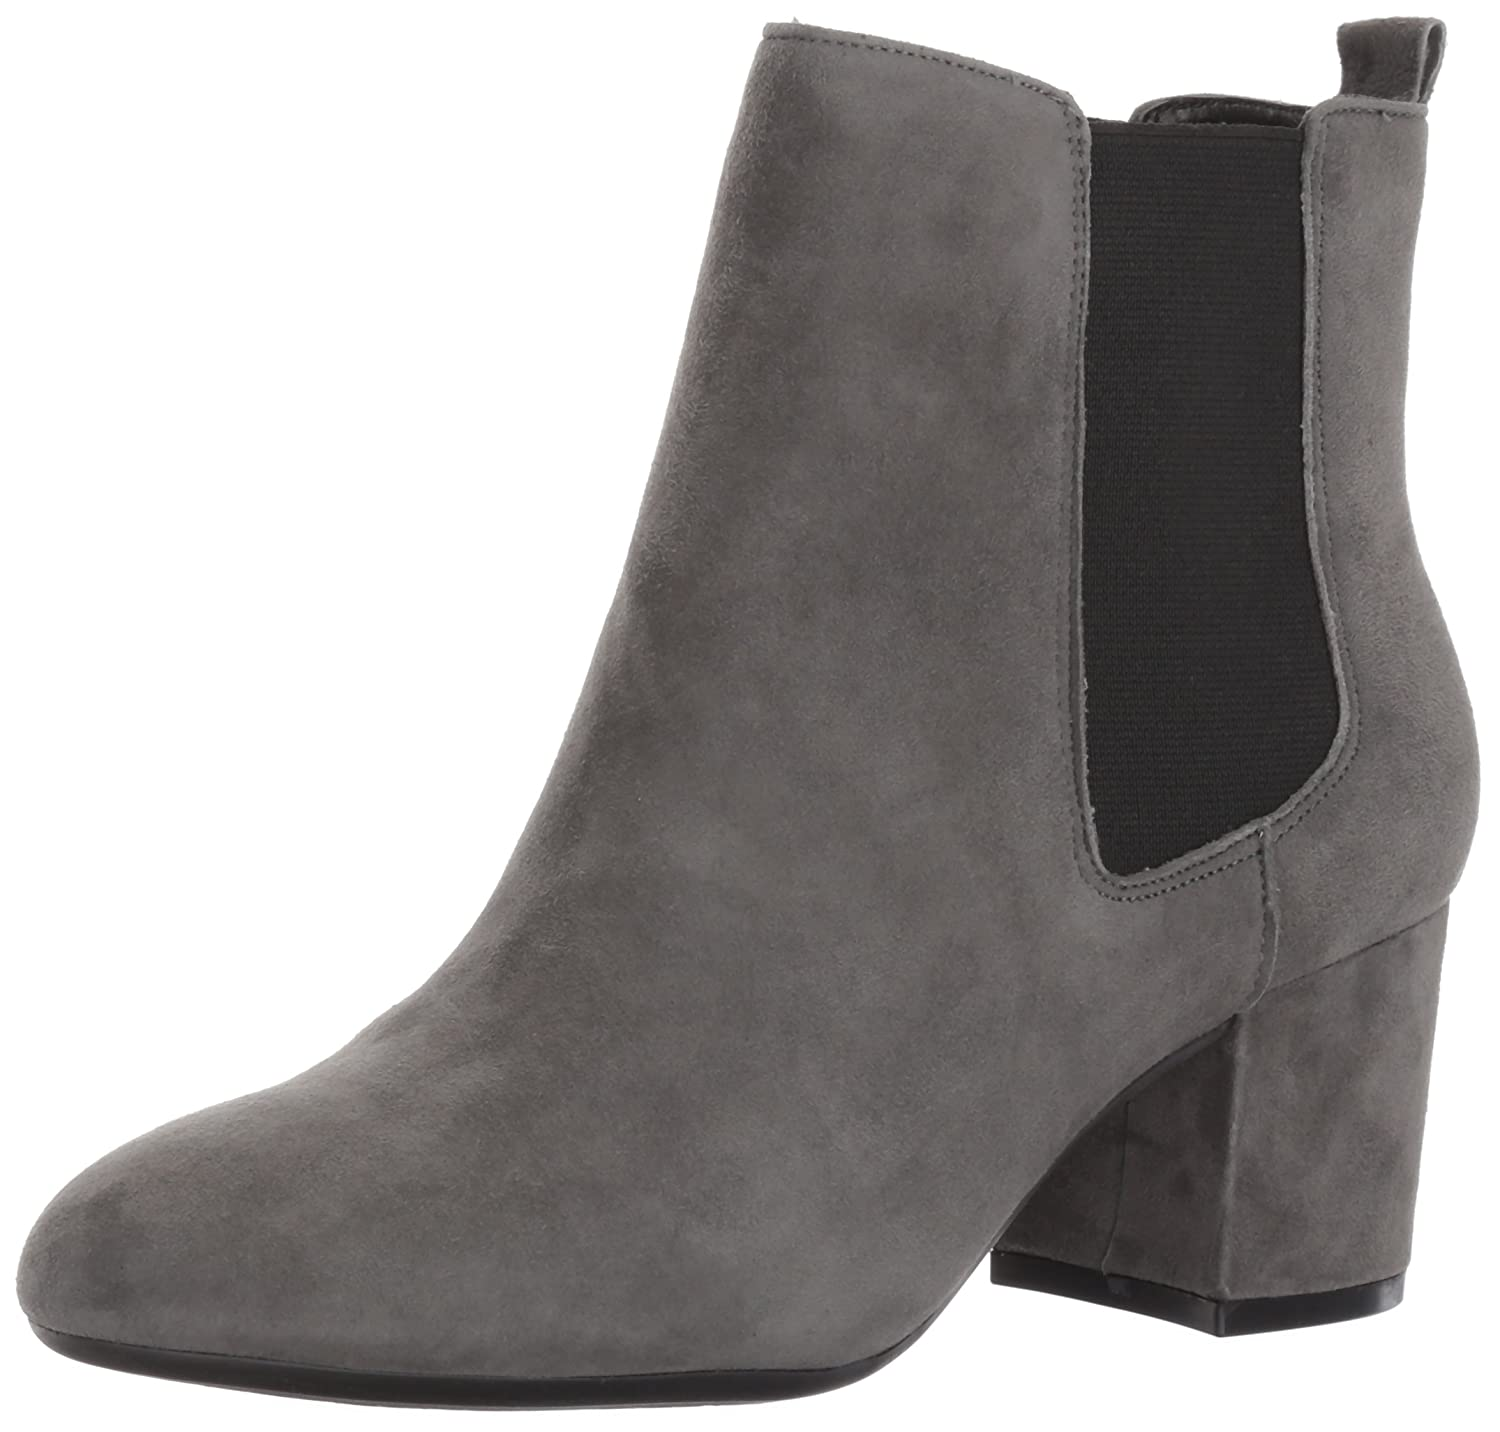 Aerosoles Women's Stockholder S Boot B06Y65B63T 10.5 B(M) US|Dark Gray Suede